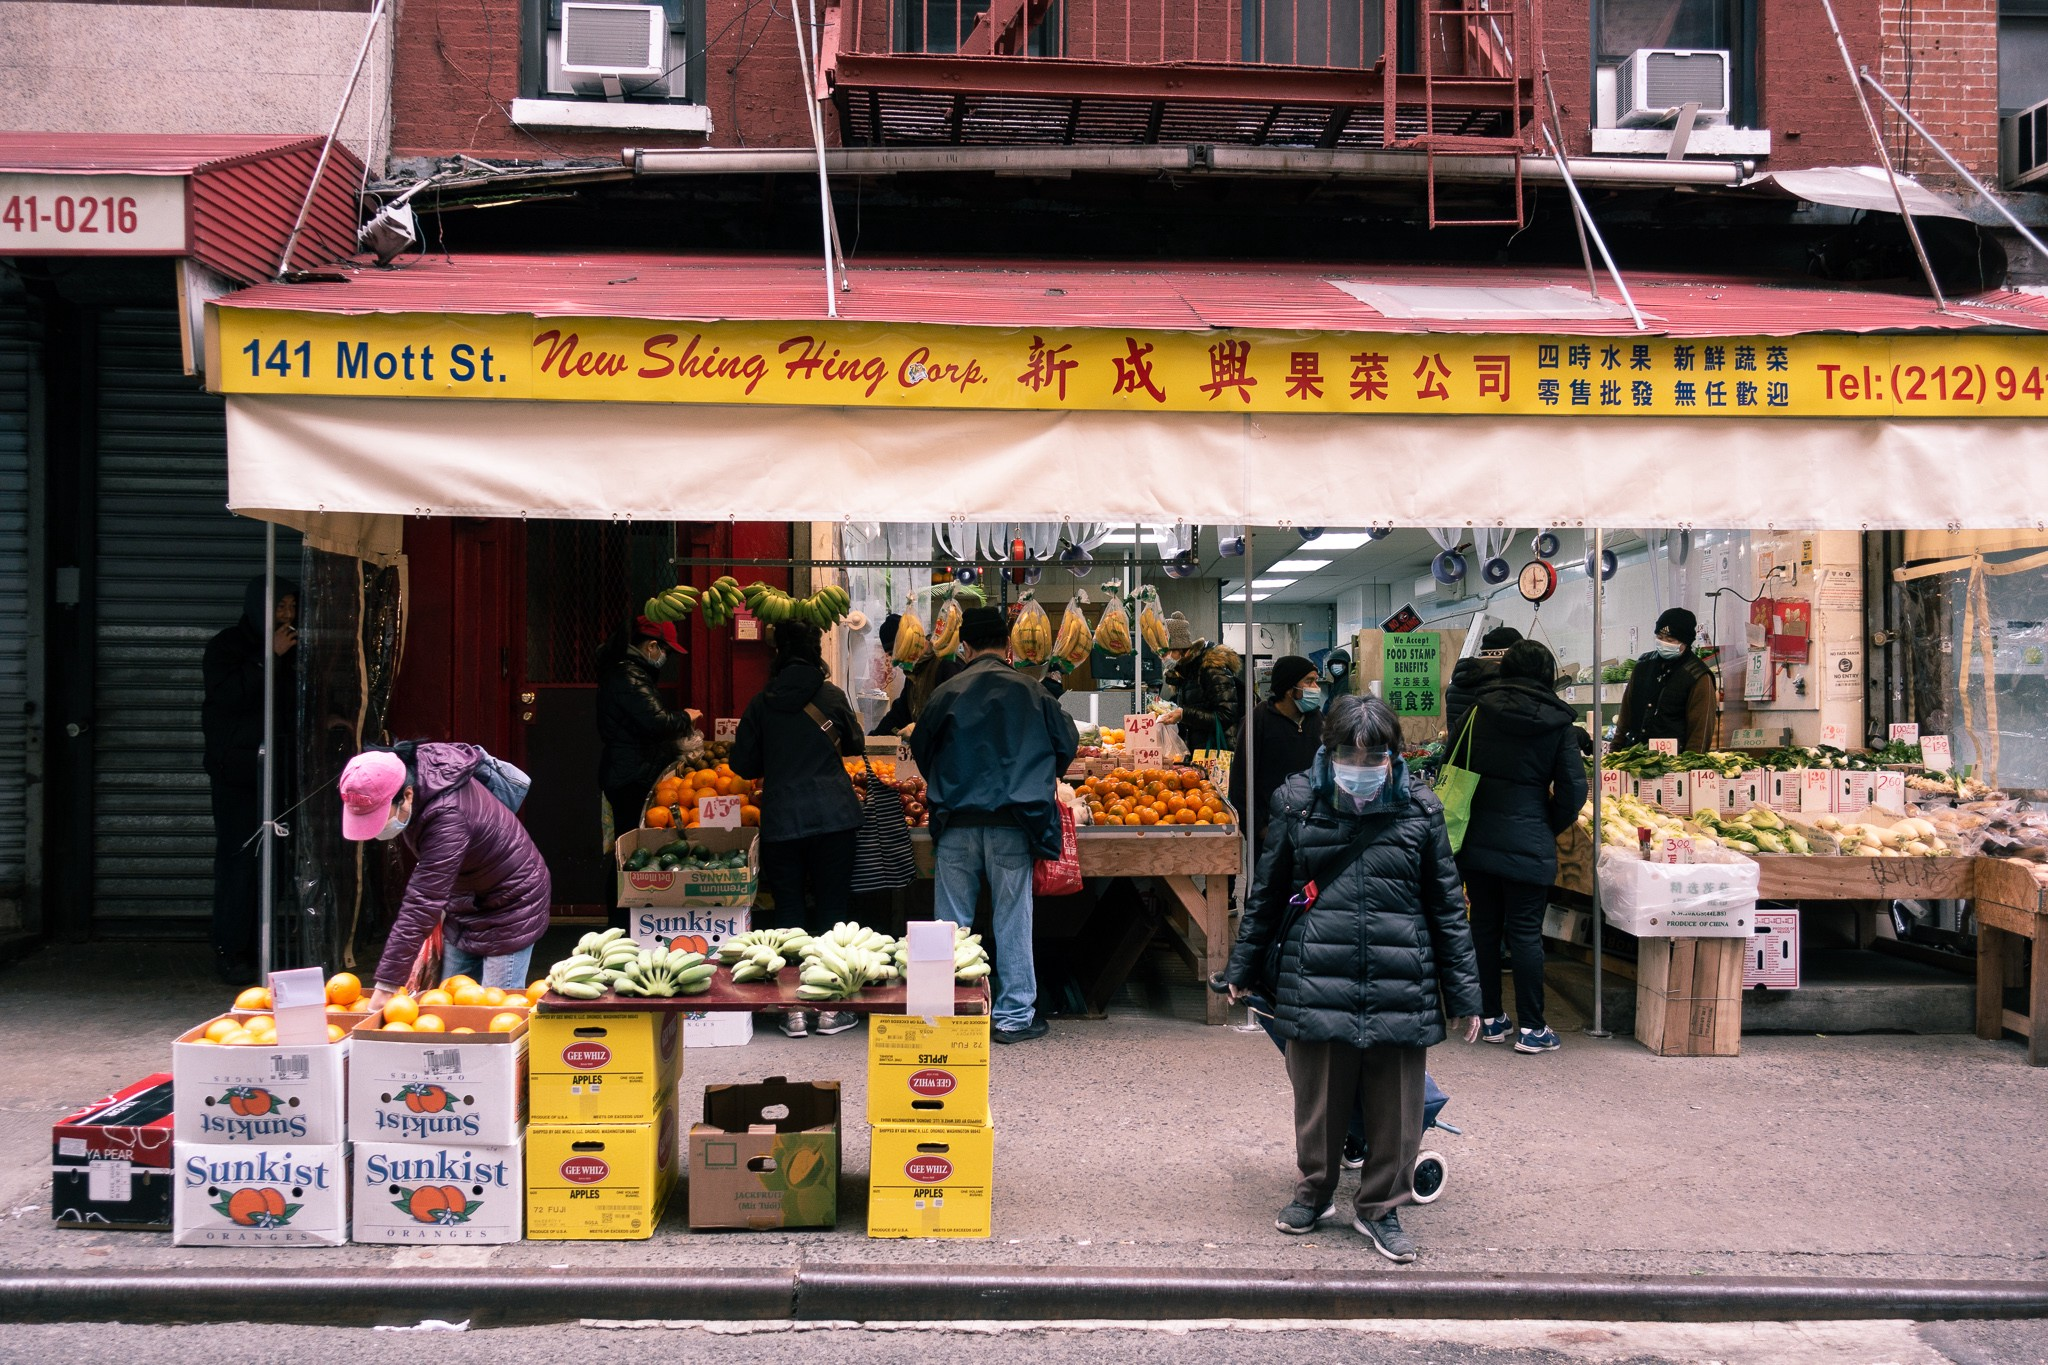 Chinatown, NYC, New York Chinatown, in Manhattan, Chinese storefront with vegetables, fruits, Chinese lettering